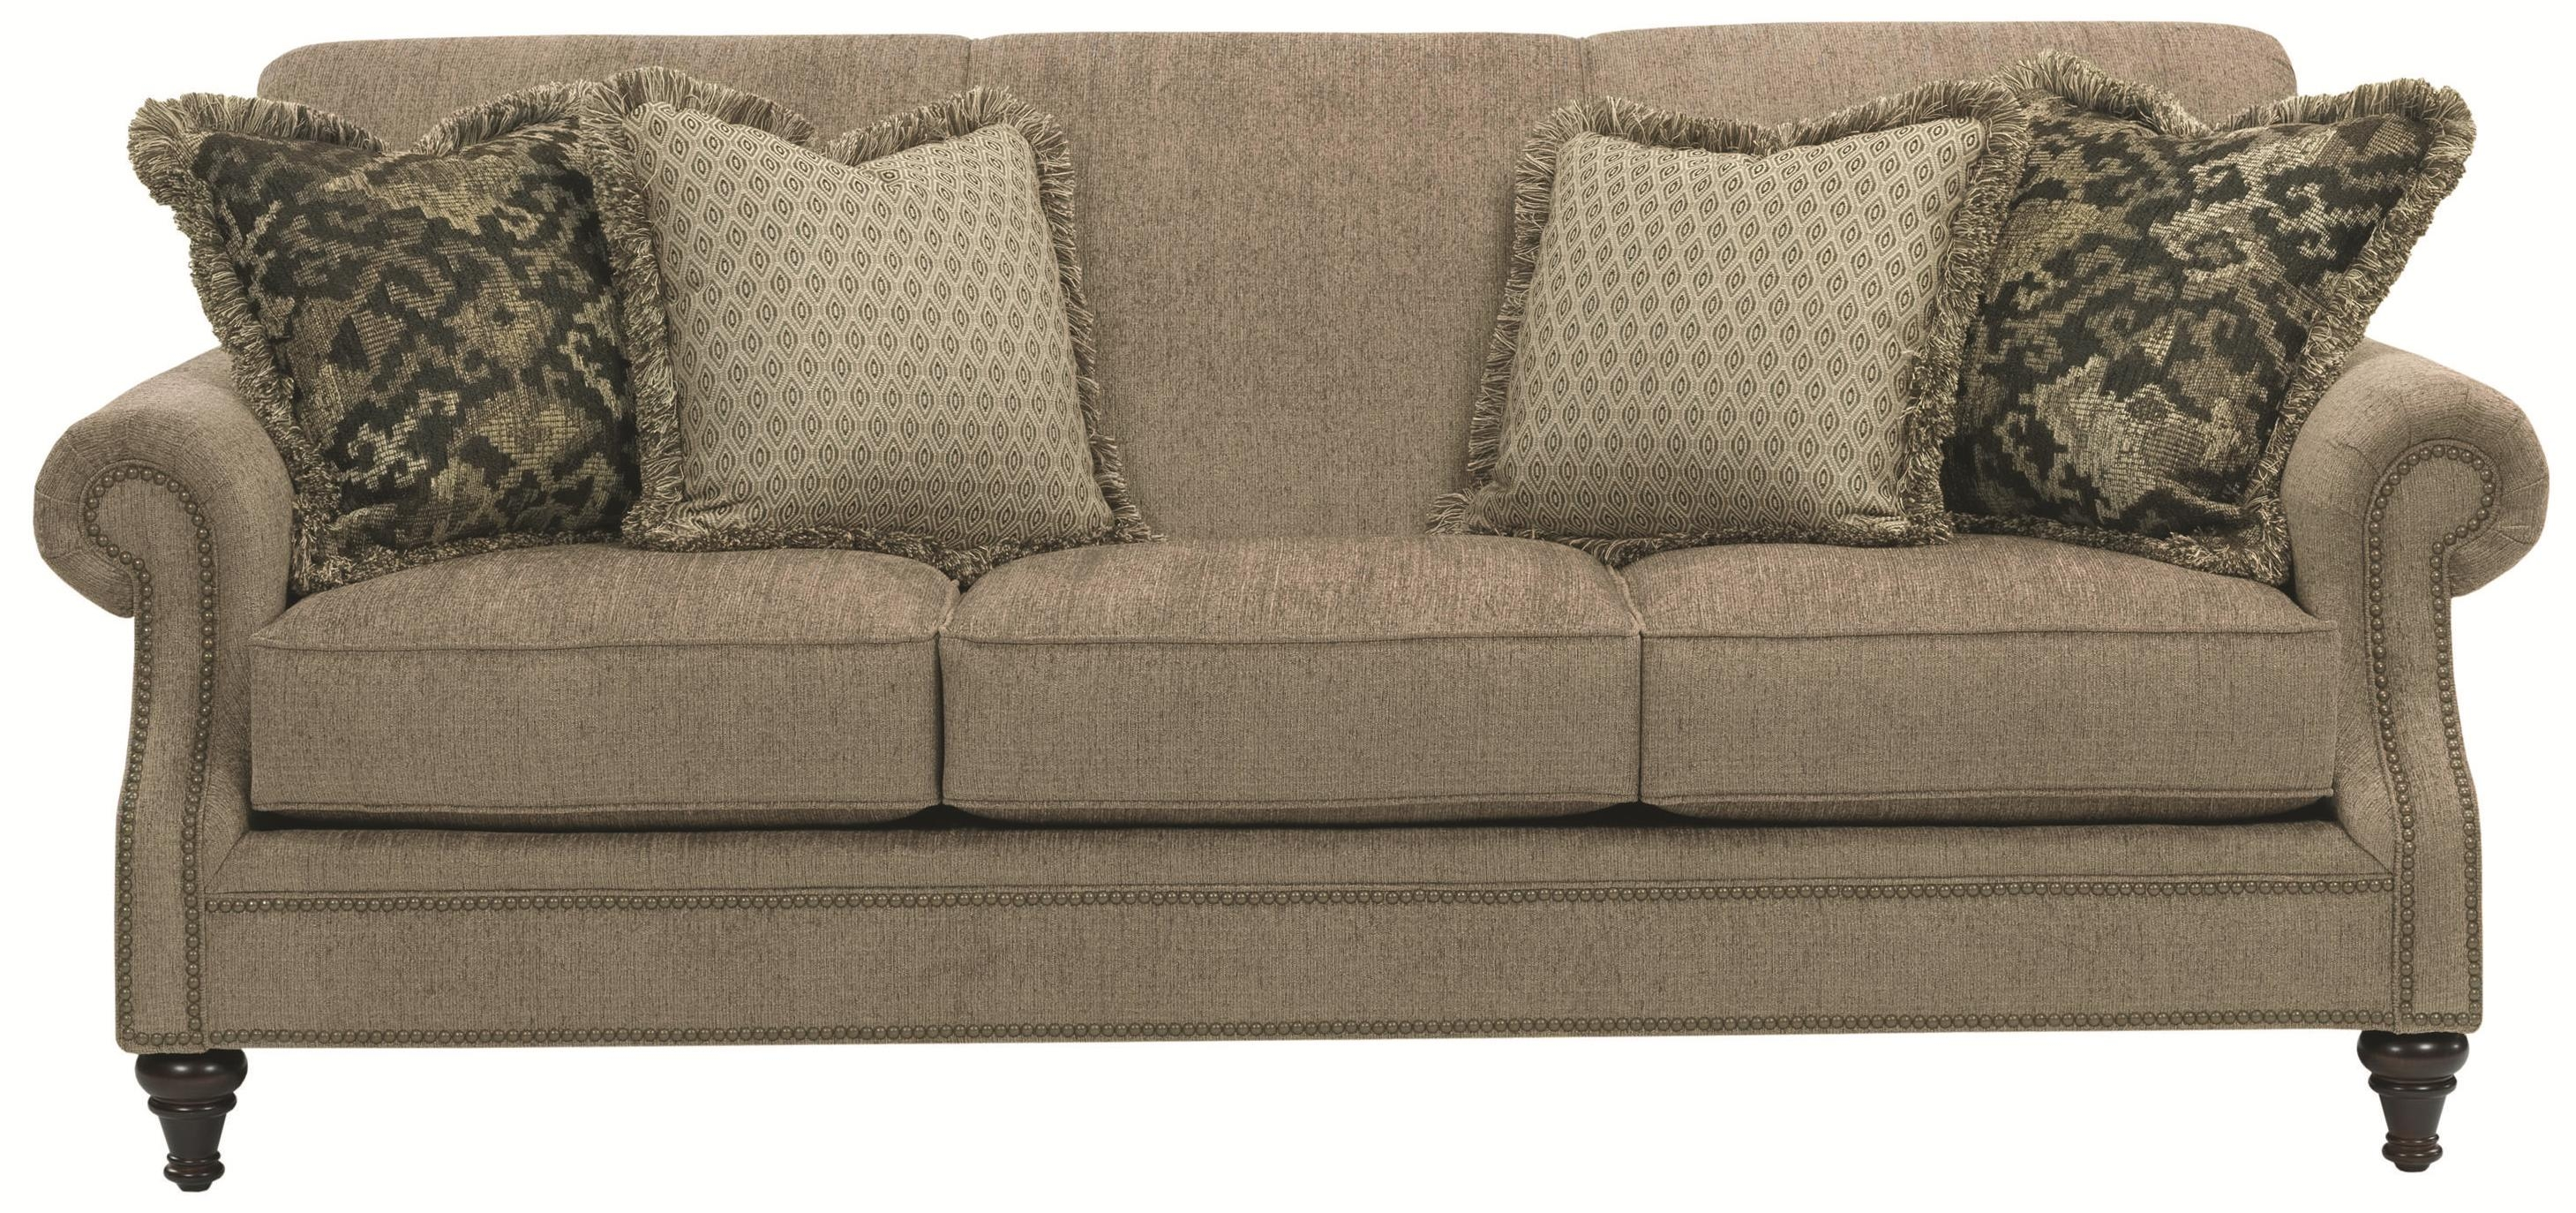 Broyhill Furniture Windsor Sofa With Rolled Arms Wayside Pertaining To Windsor Sofas (Image 2 of 15)